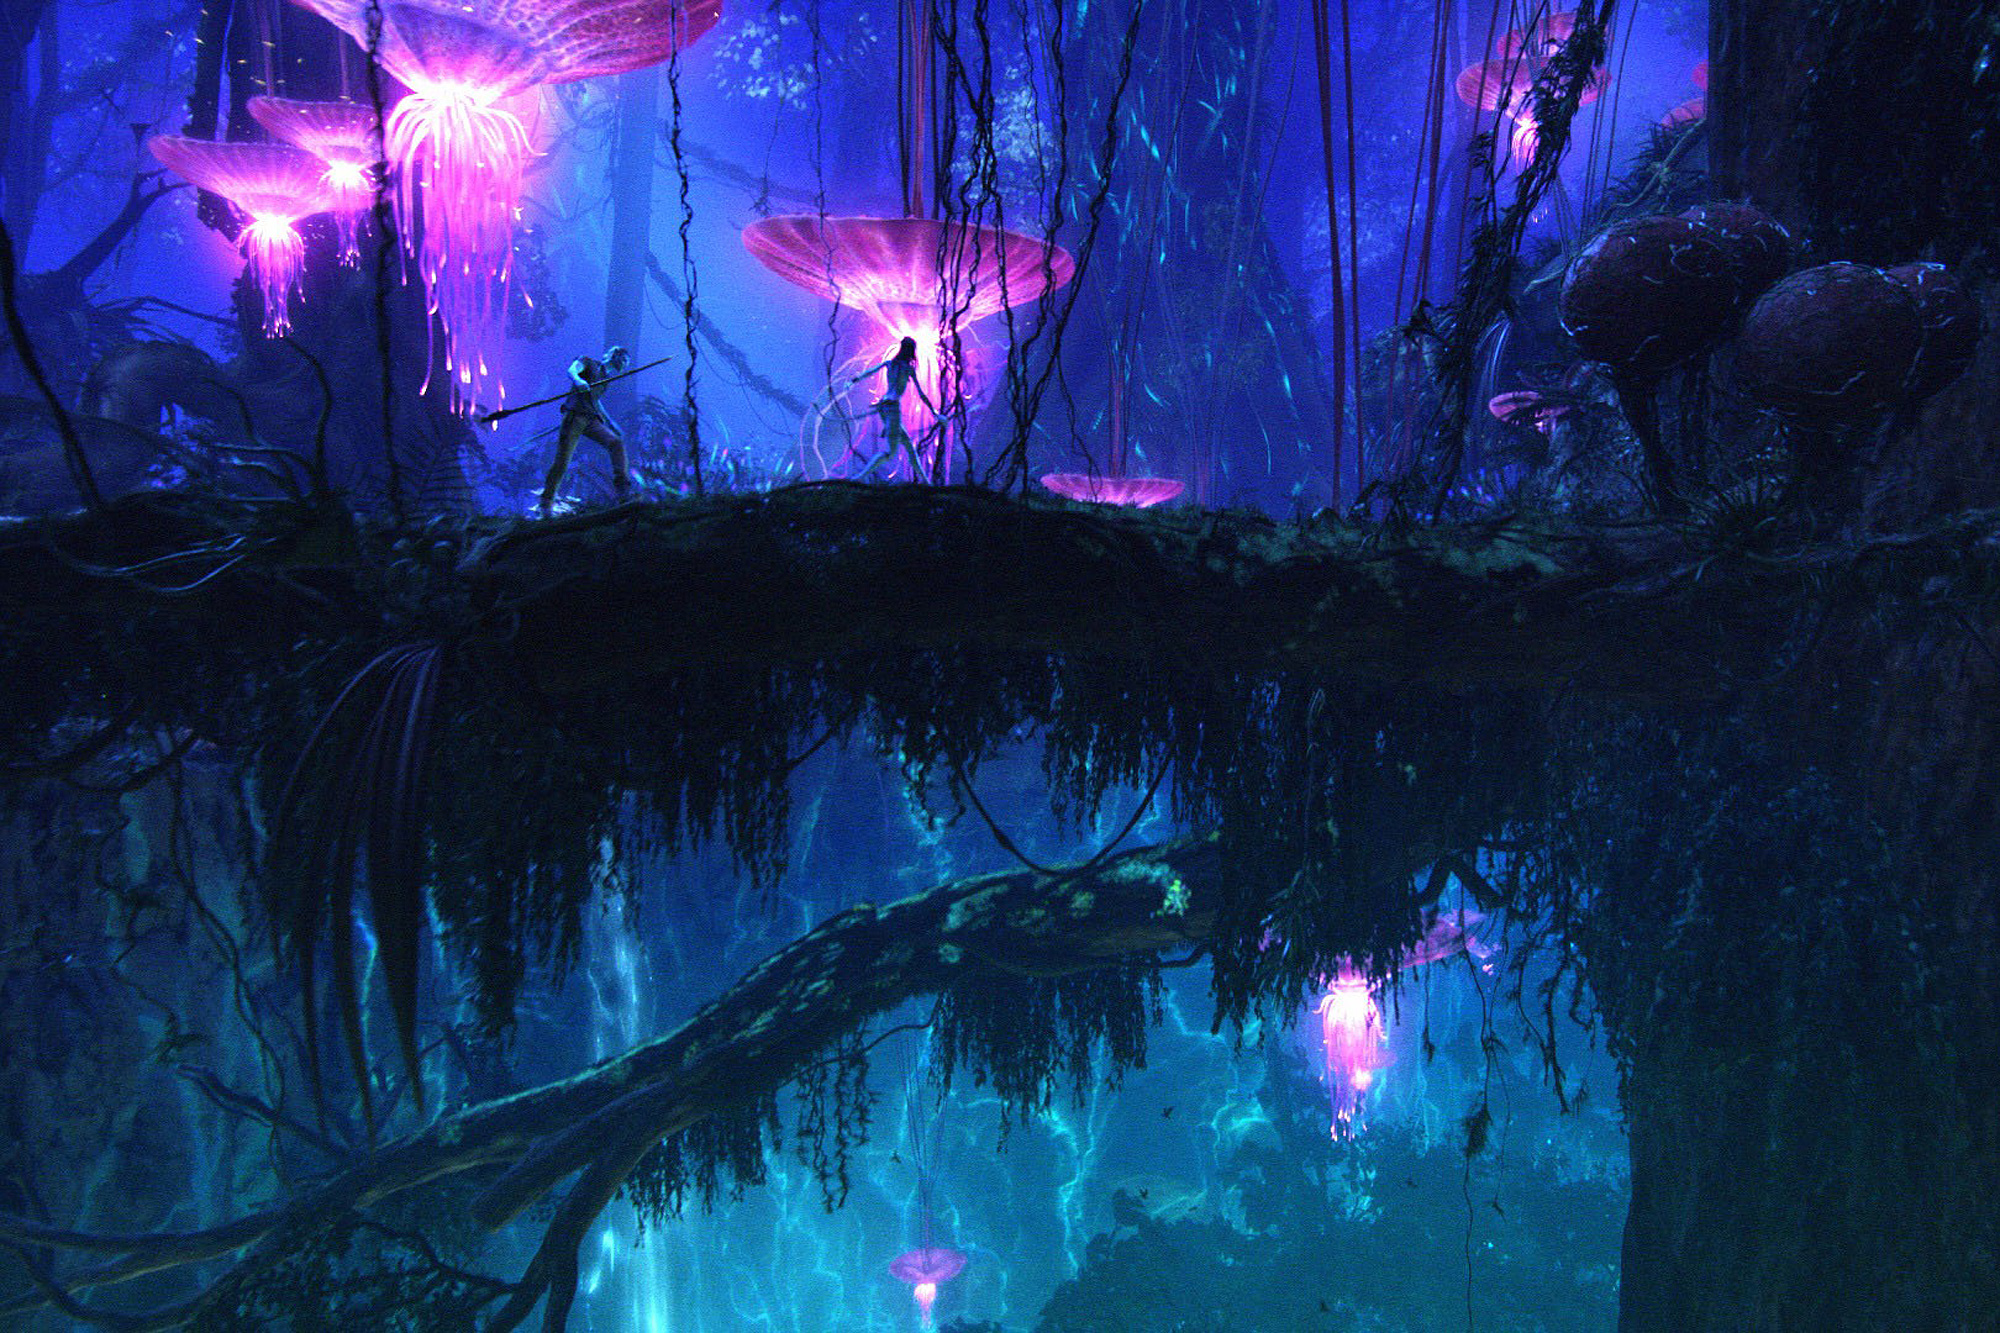 AVATAR, 2009, TM & Copyright ©20th Century Fox. All rights reserved/Courtesy Everett Collection